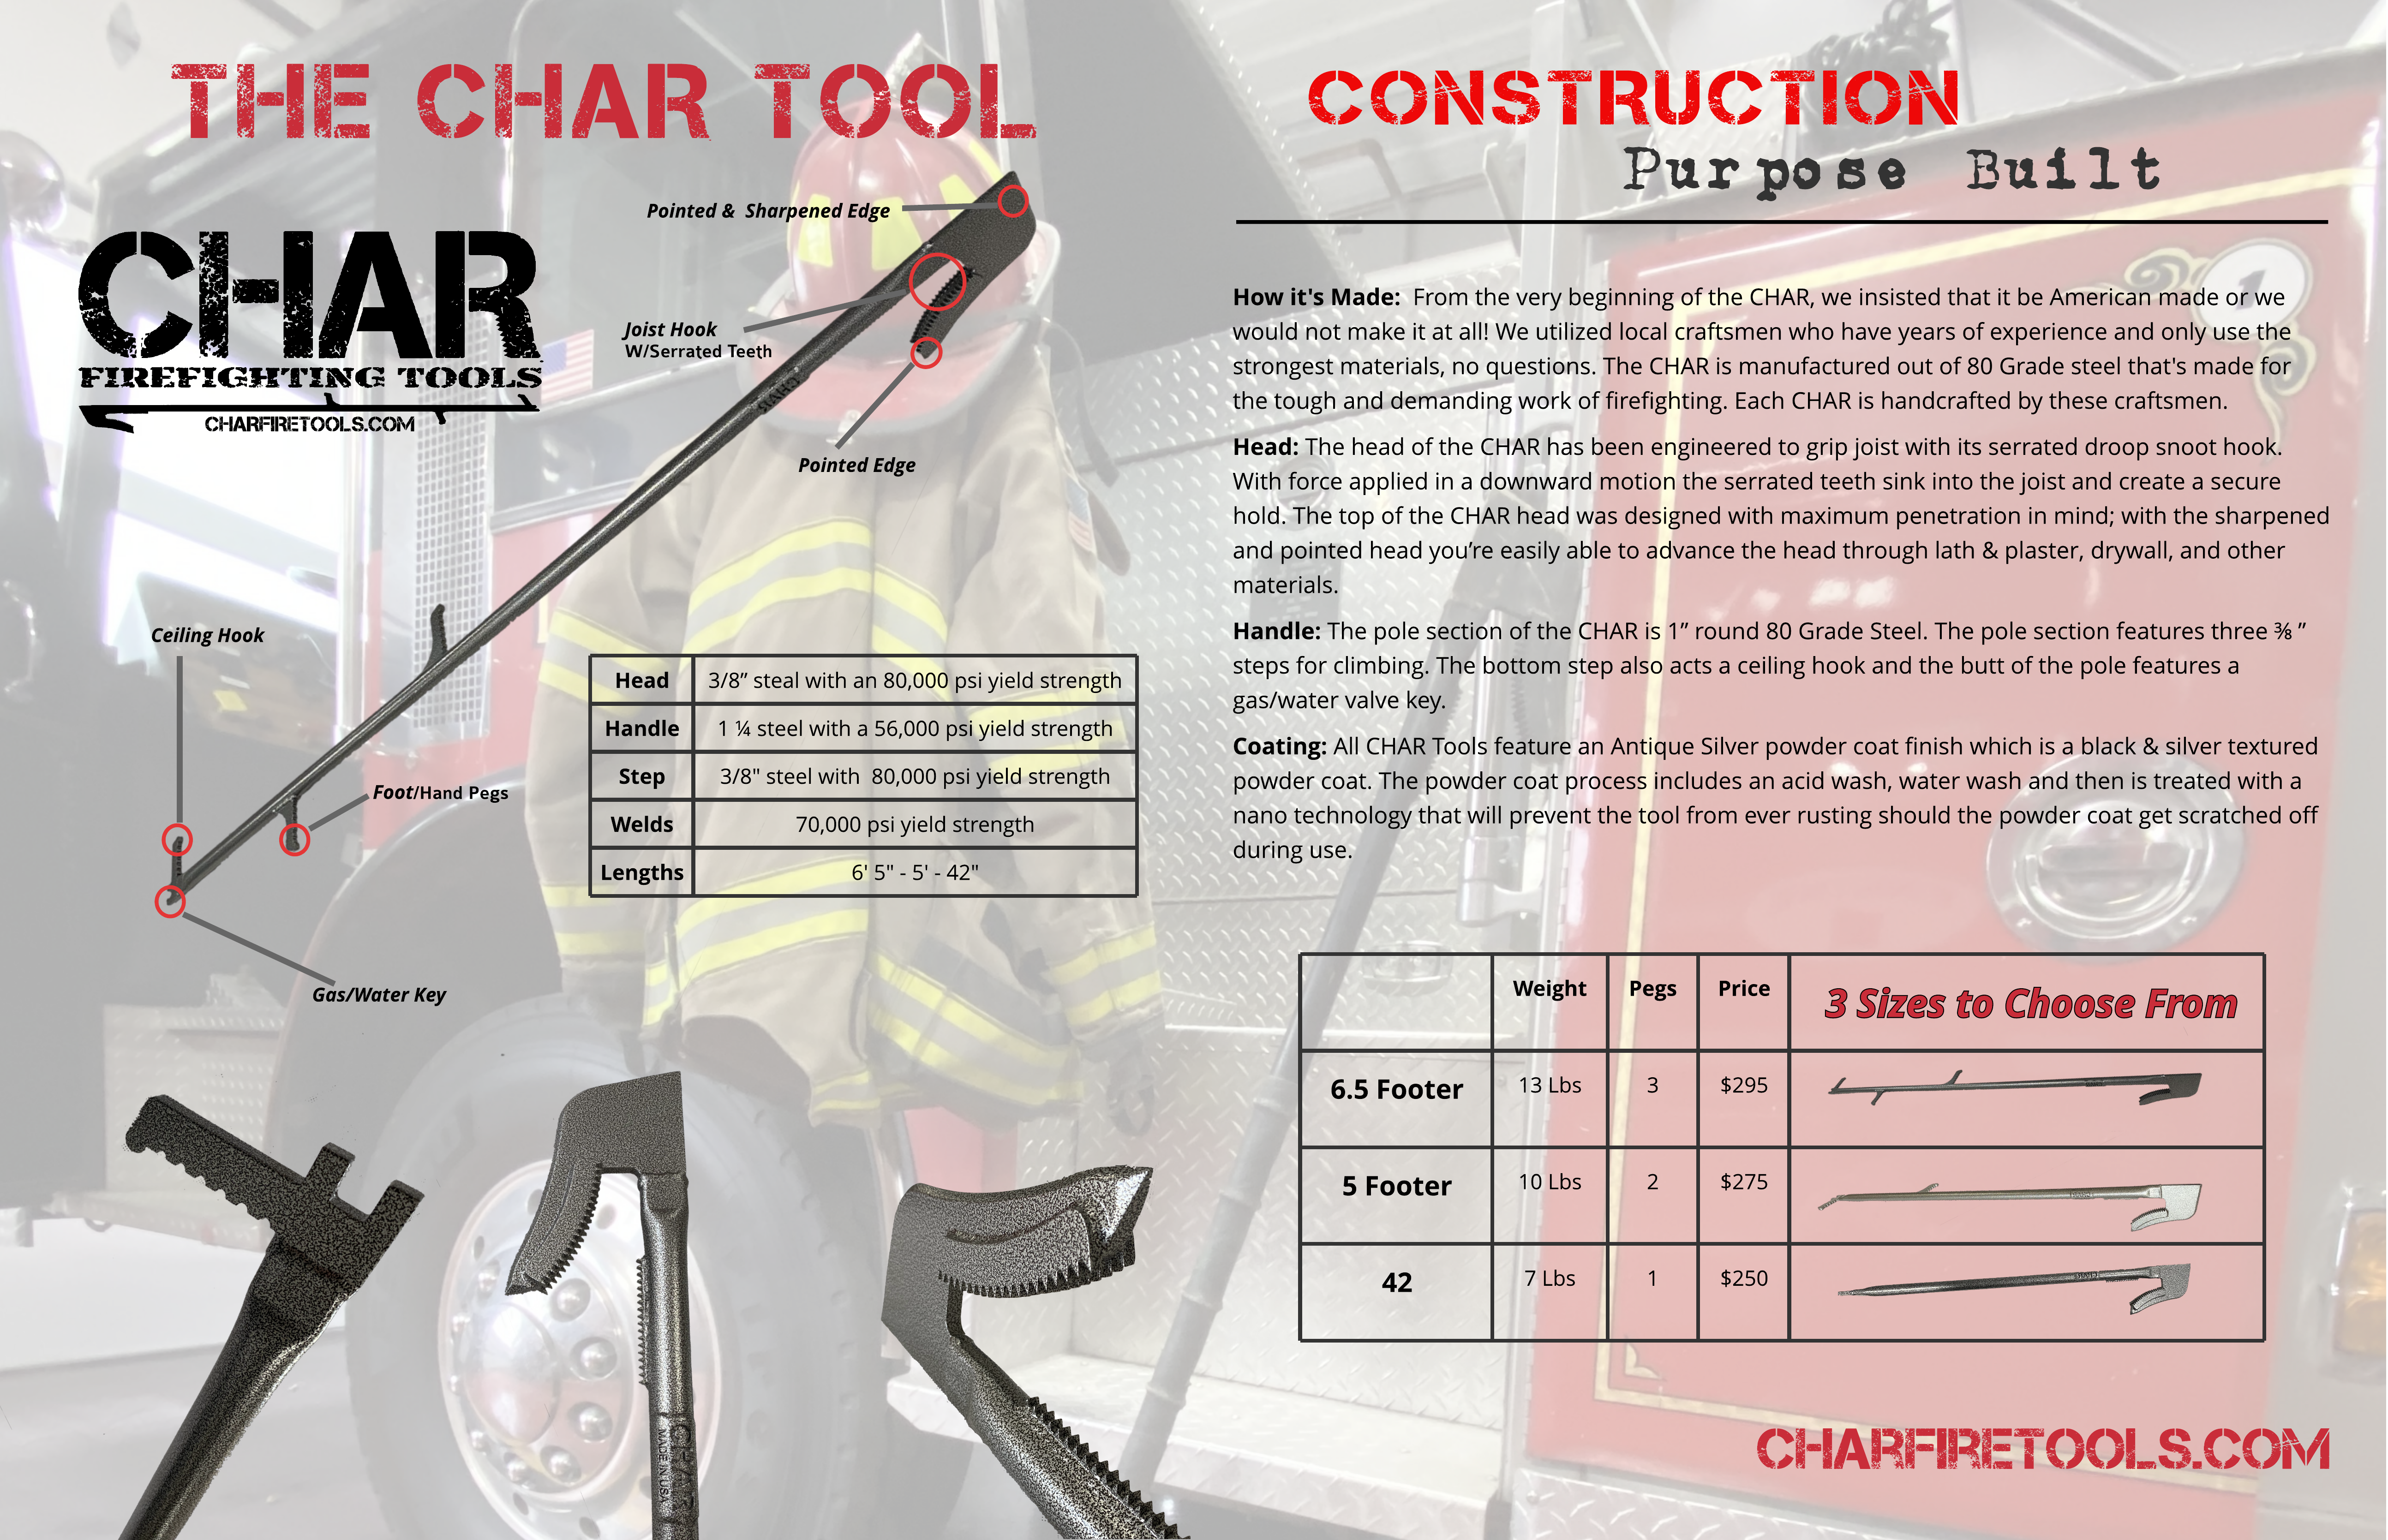 char-tool-catalog-photo-2-columns-and-quote.png